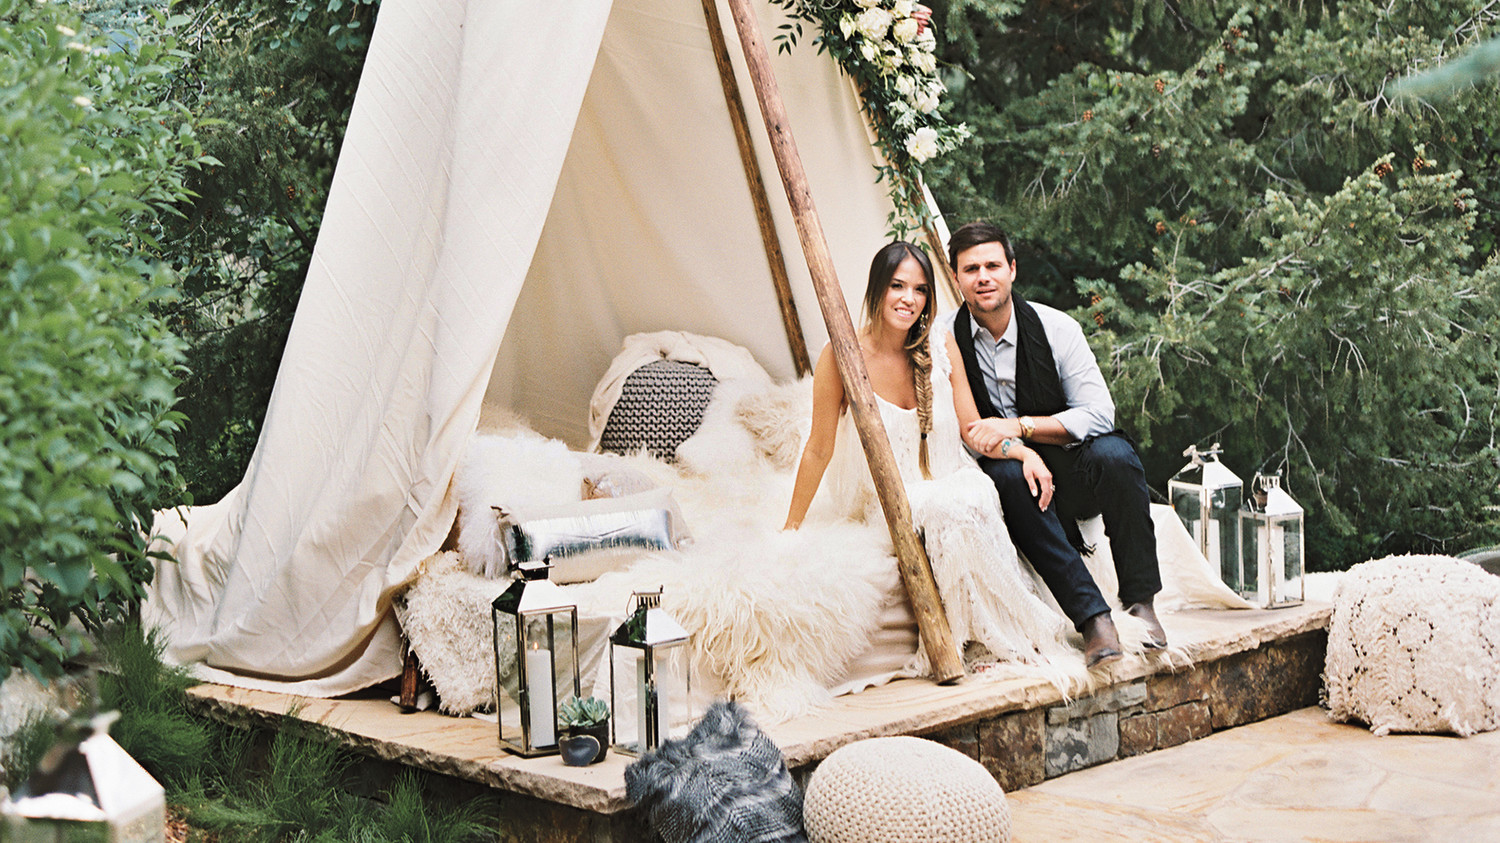 This Welcome Party Will Give You Major Boho Wedding